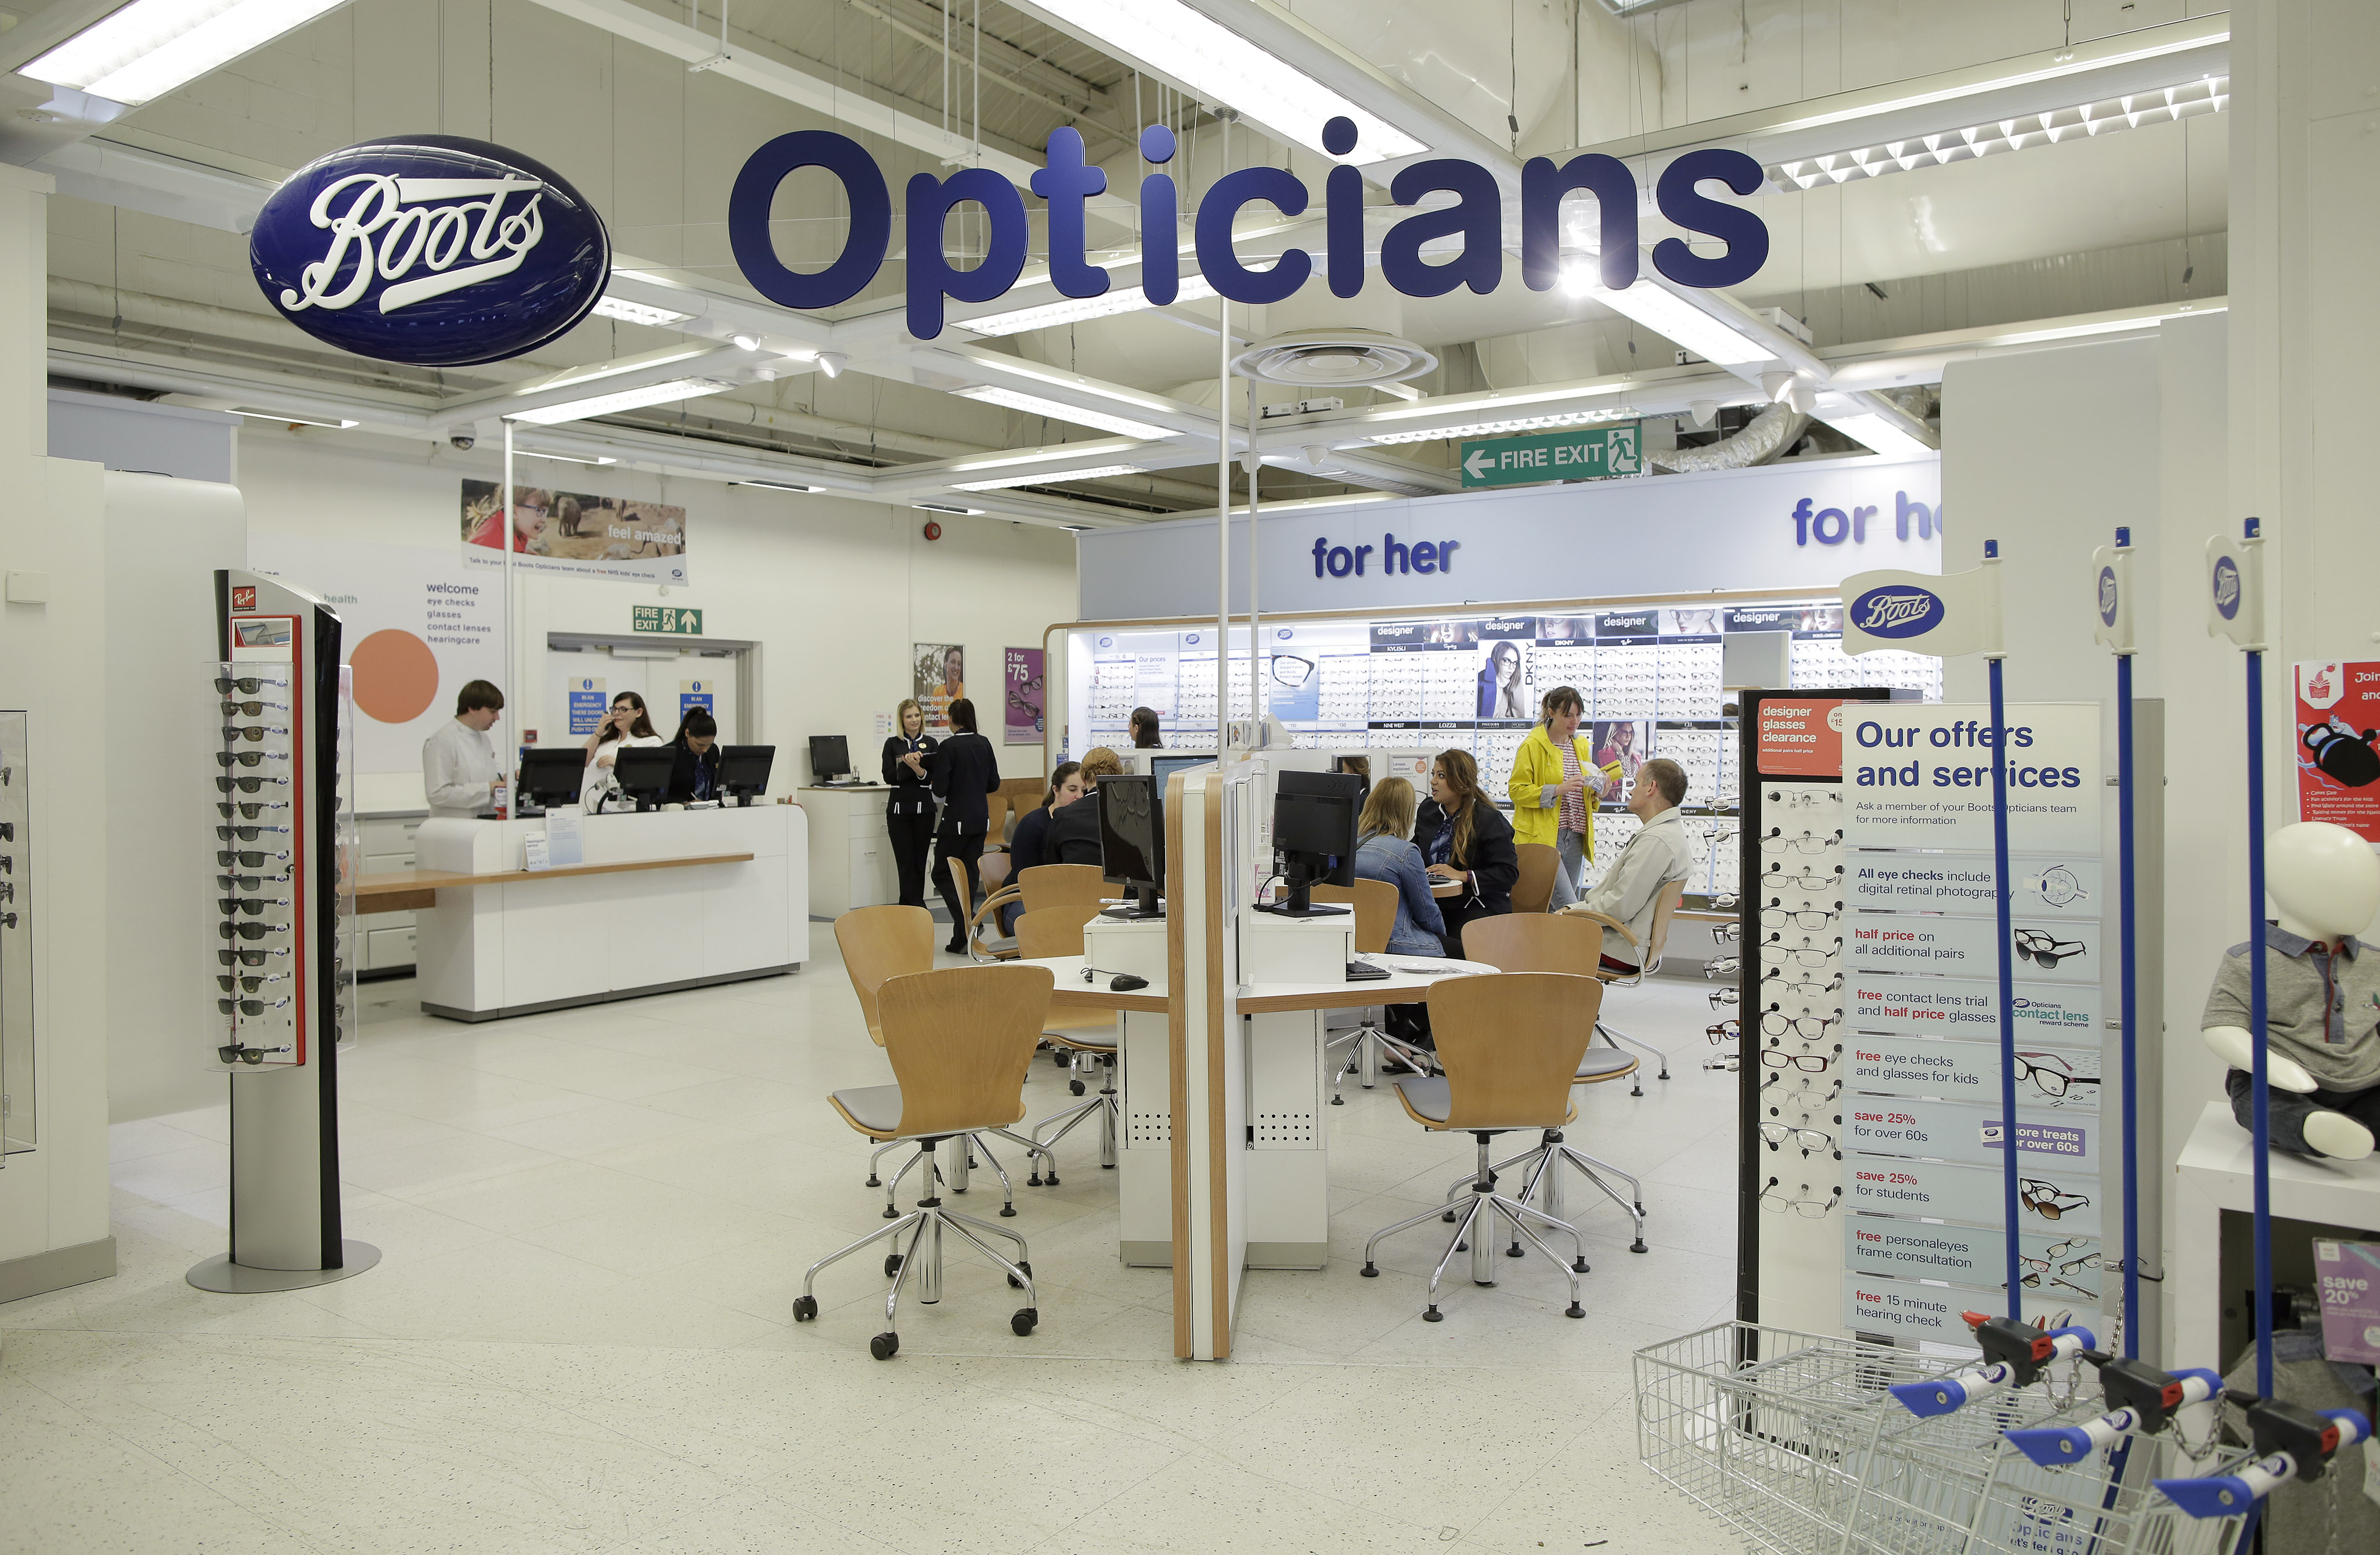 (photo shoot 0916-004) Photography at Fosse Park branch of Boots Opticians for online recruitment tool.